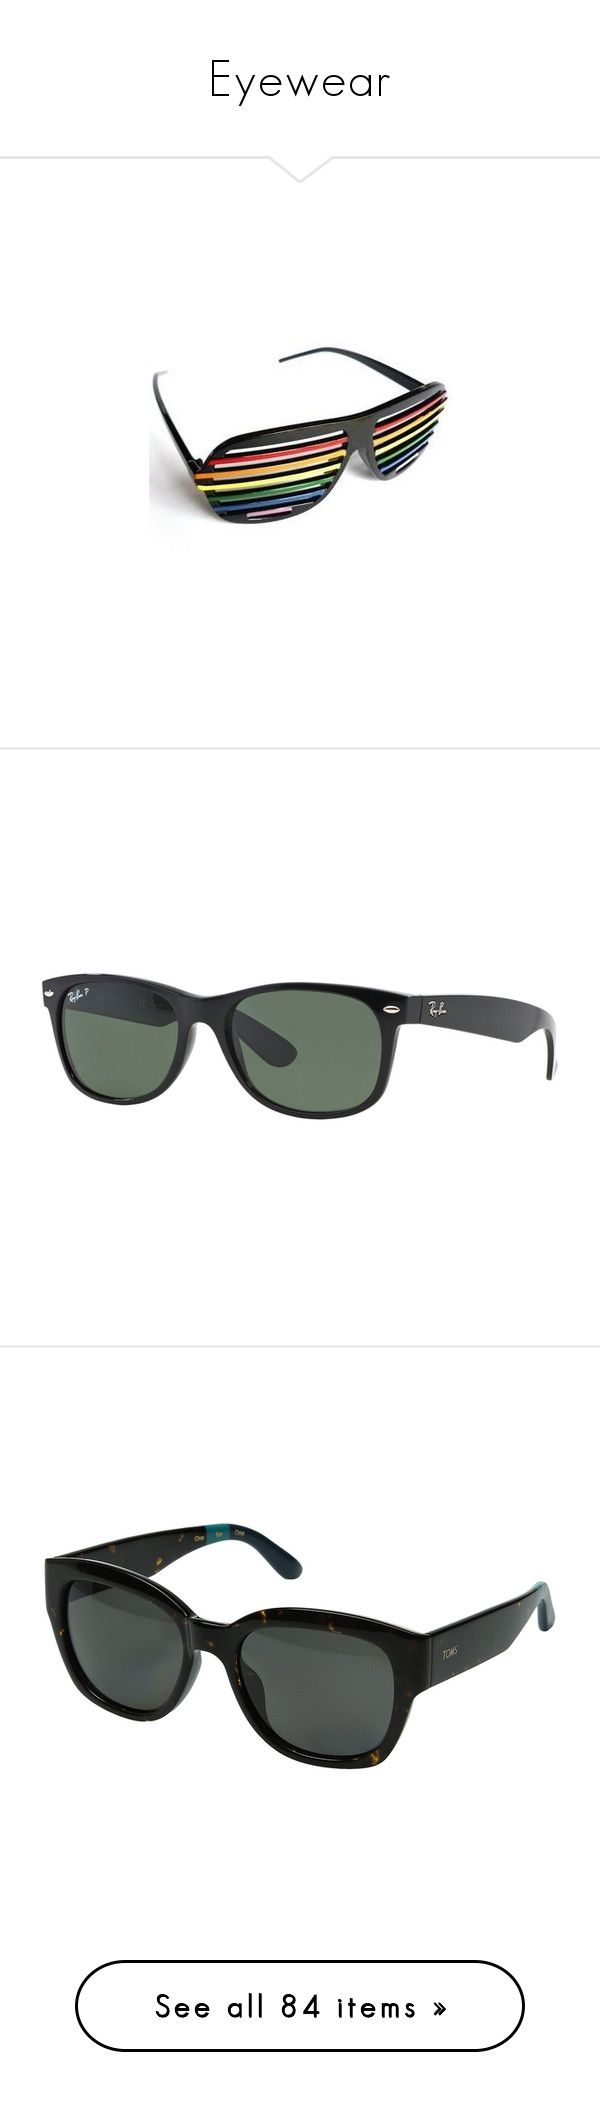 """""""Eyewear"""" by mia-christine ❤ liked on Polyvore featuring accessories, eyewear, sunglasses, ray-ban wayfarer, ray ban sunglasses, green sunglasses, tortoise shell sunglasses, tortoise wayfarer, plastic sunglasses and round lens sunglasses"""